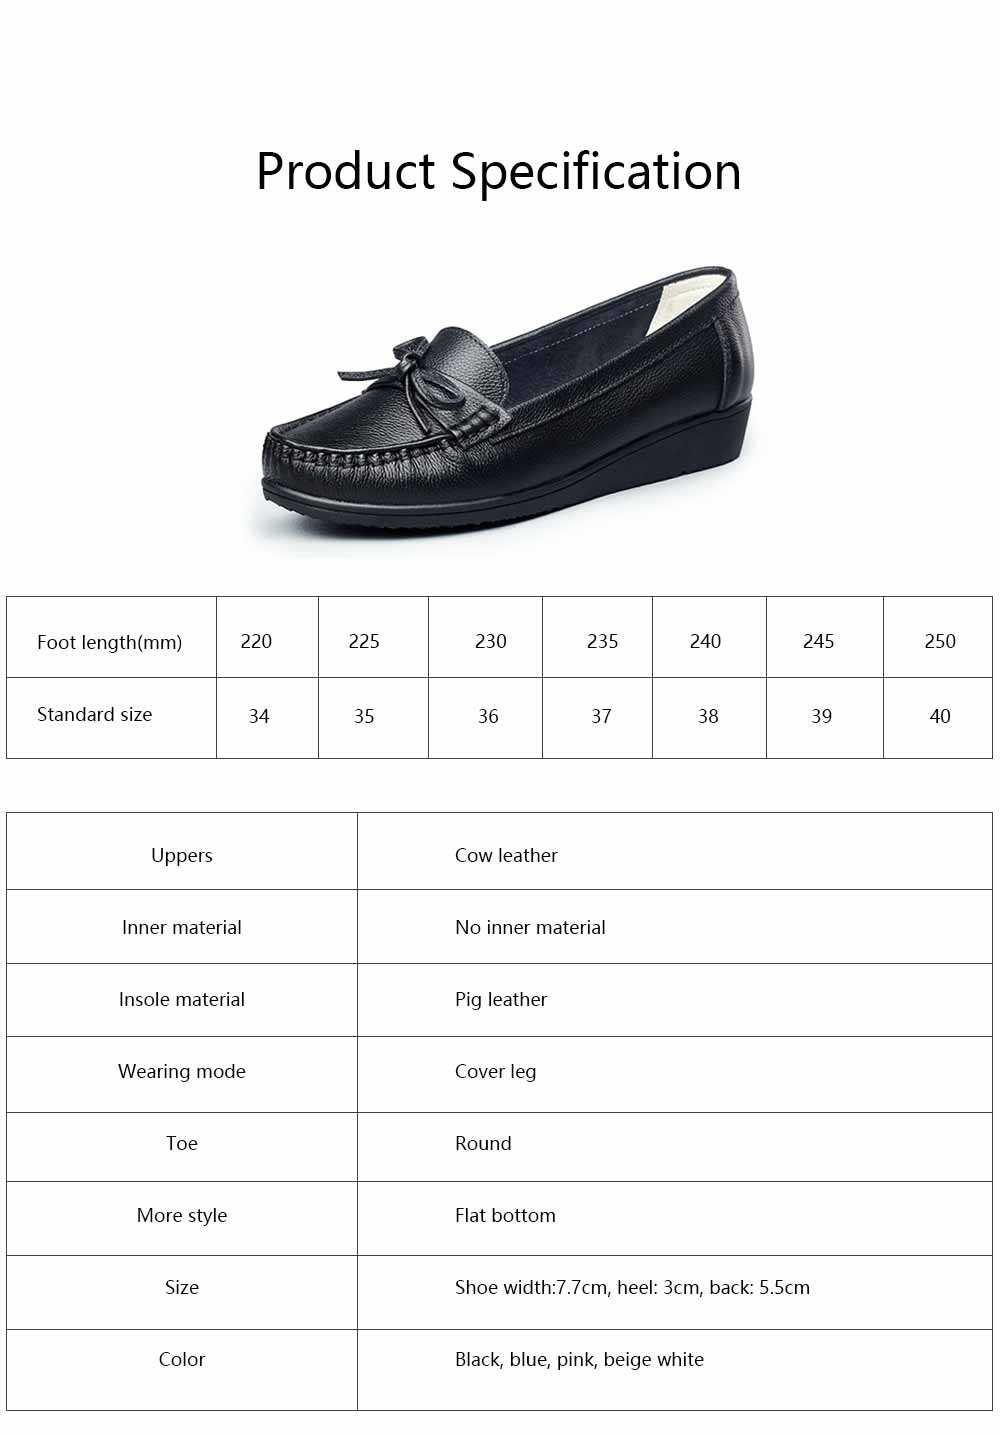 Sandal Leather PU Rubber Material, Flat-heeled Abrasion-resistant Foot Steady Adjustable Shallow Shoes for Mommy Nurse 5